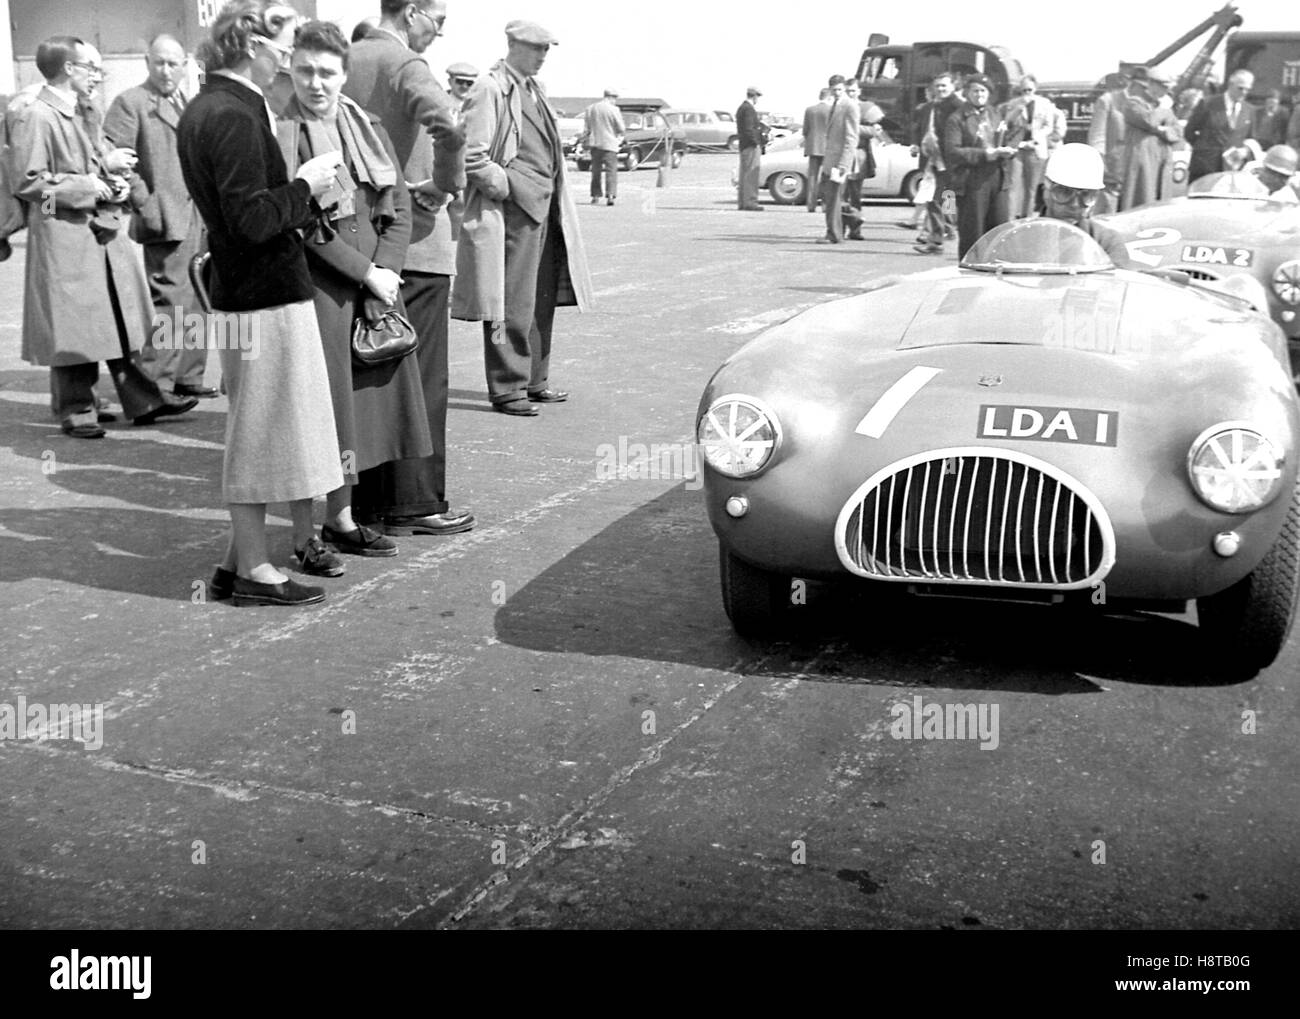 1954 SILVERSTONE KIEFT CENTRE SEAT SPORTS CARS - Stock Image